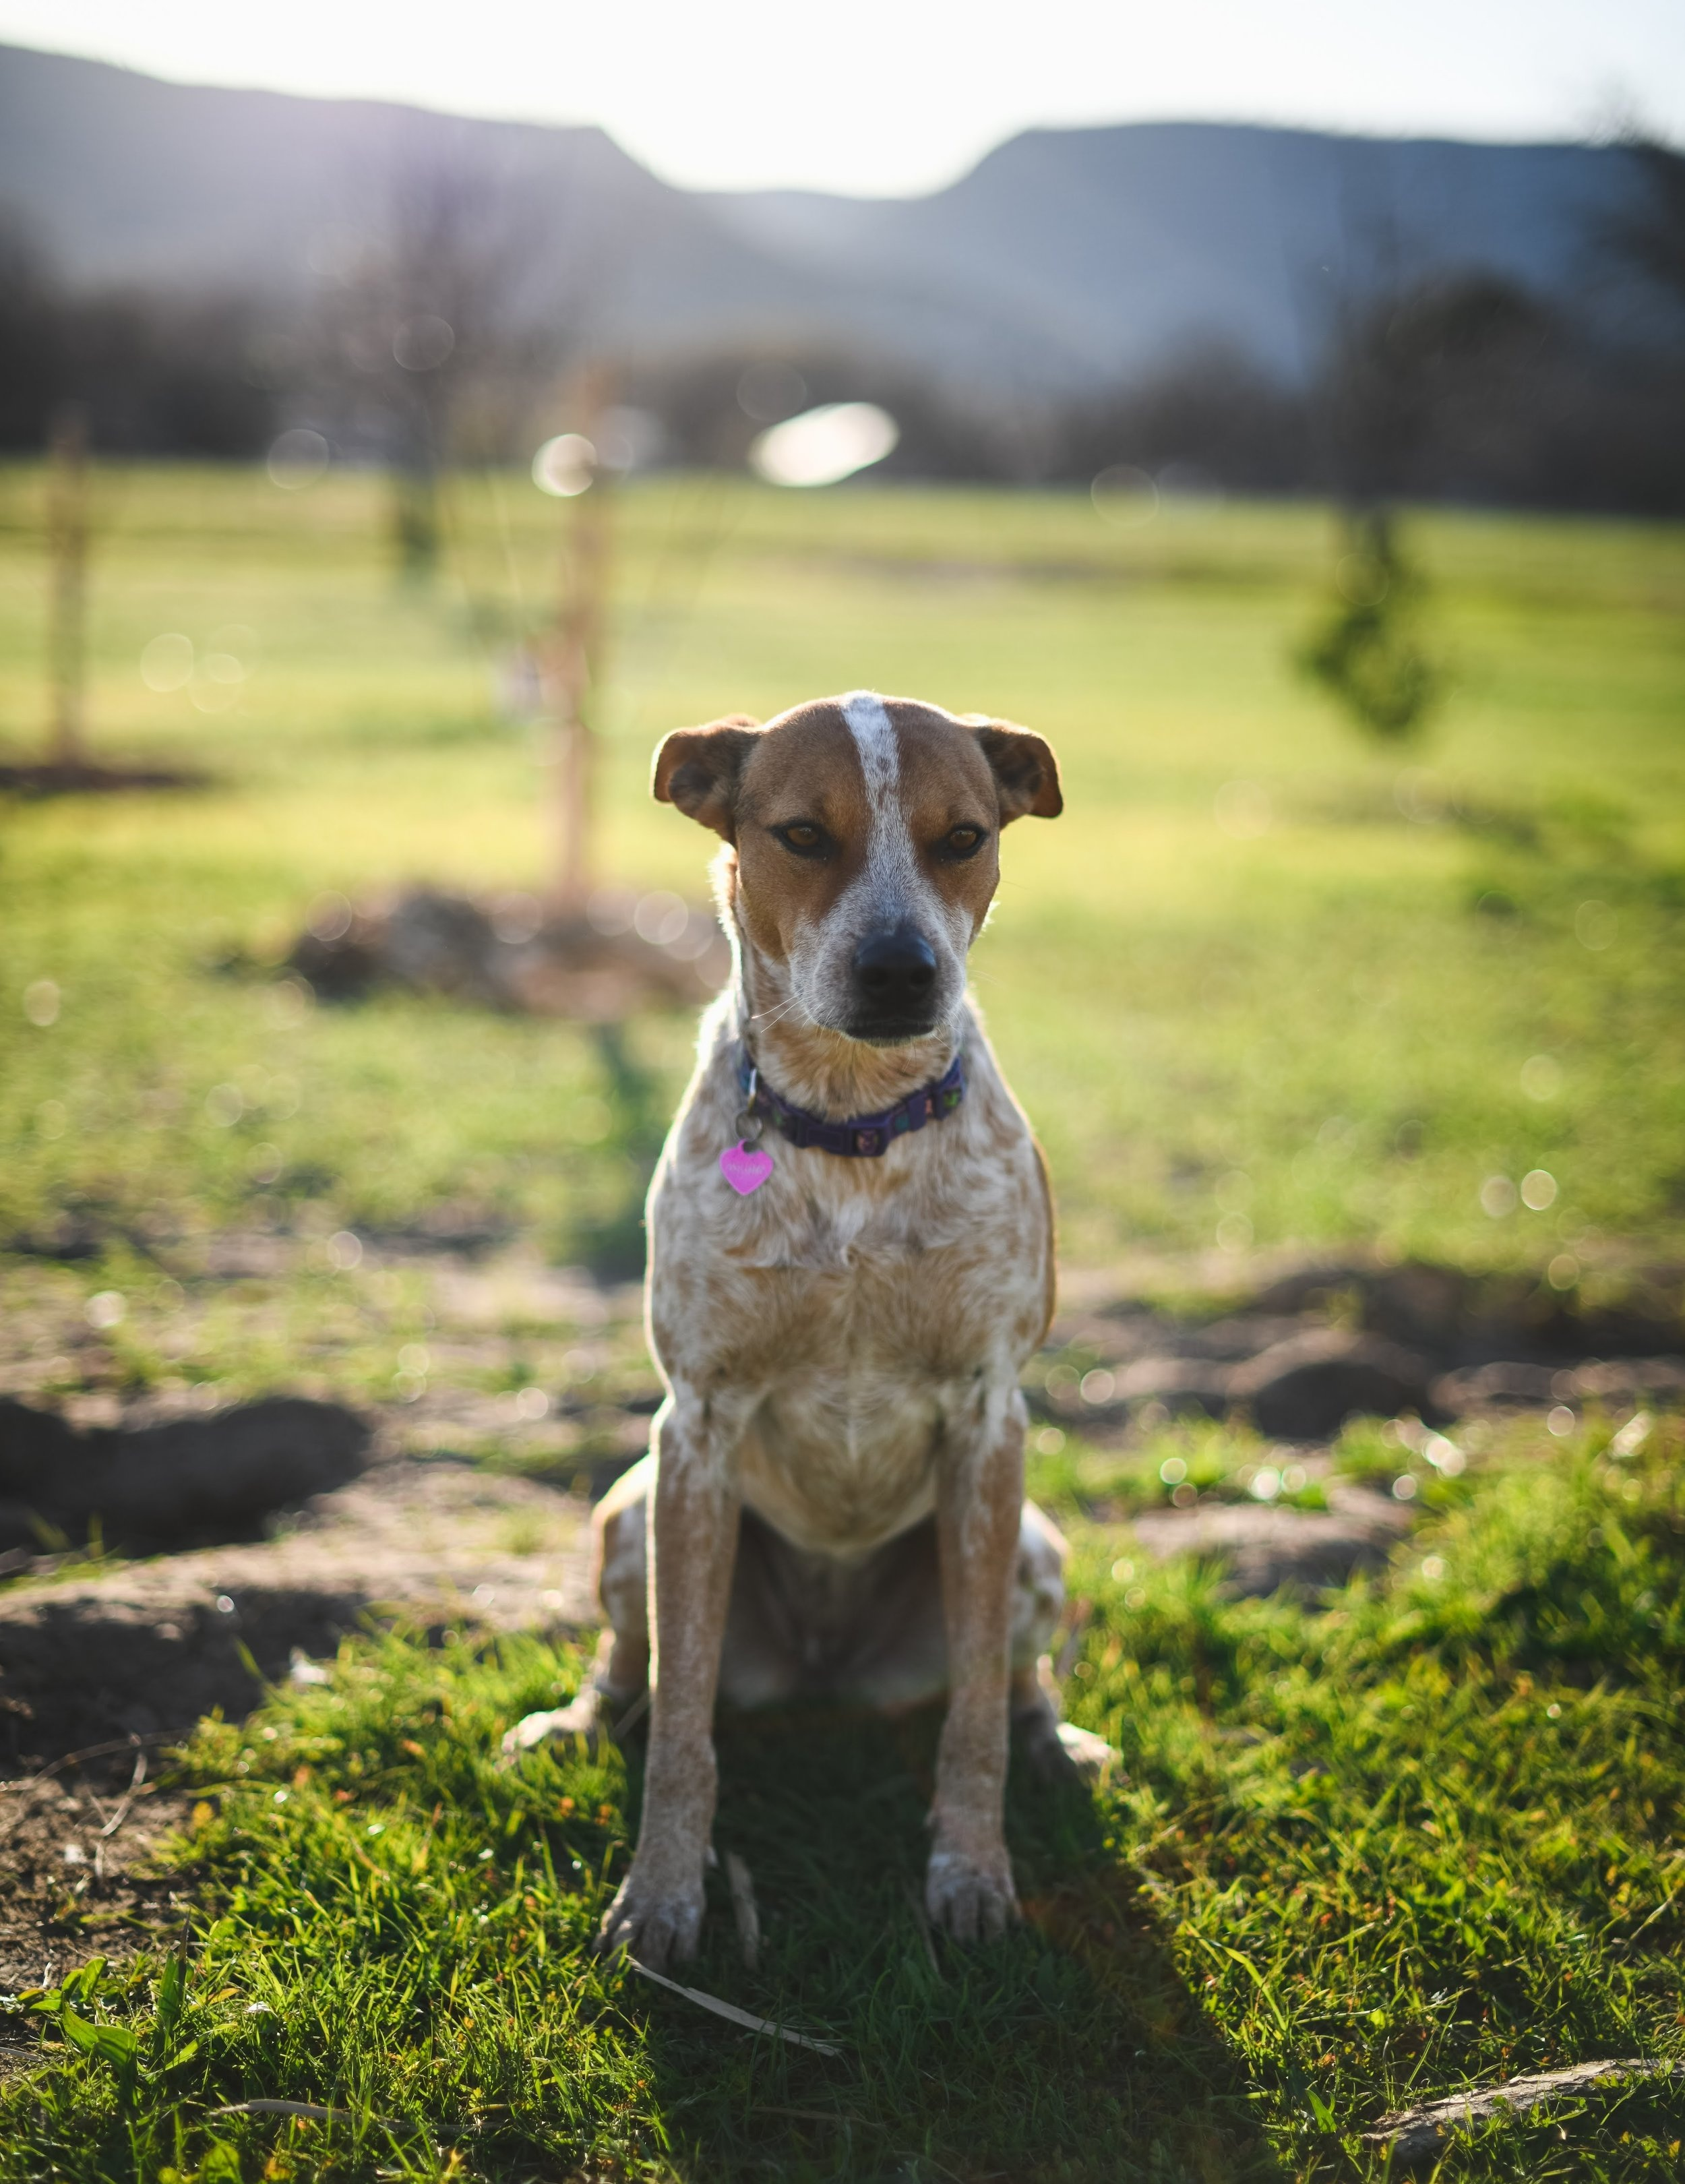 Akuna - No farm is complete without a couple farm dogs. Akuna is the farm's Heeler/Hound mix who can outrun any jack rabbit and protects the farm.